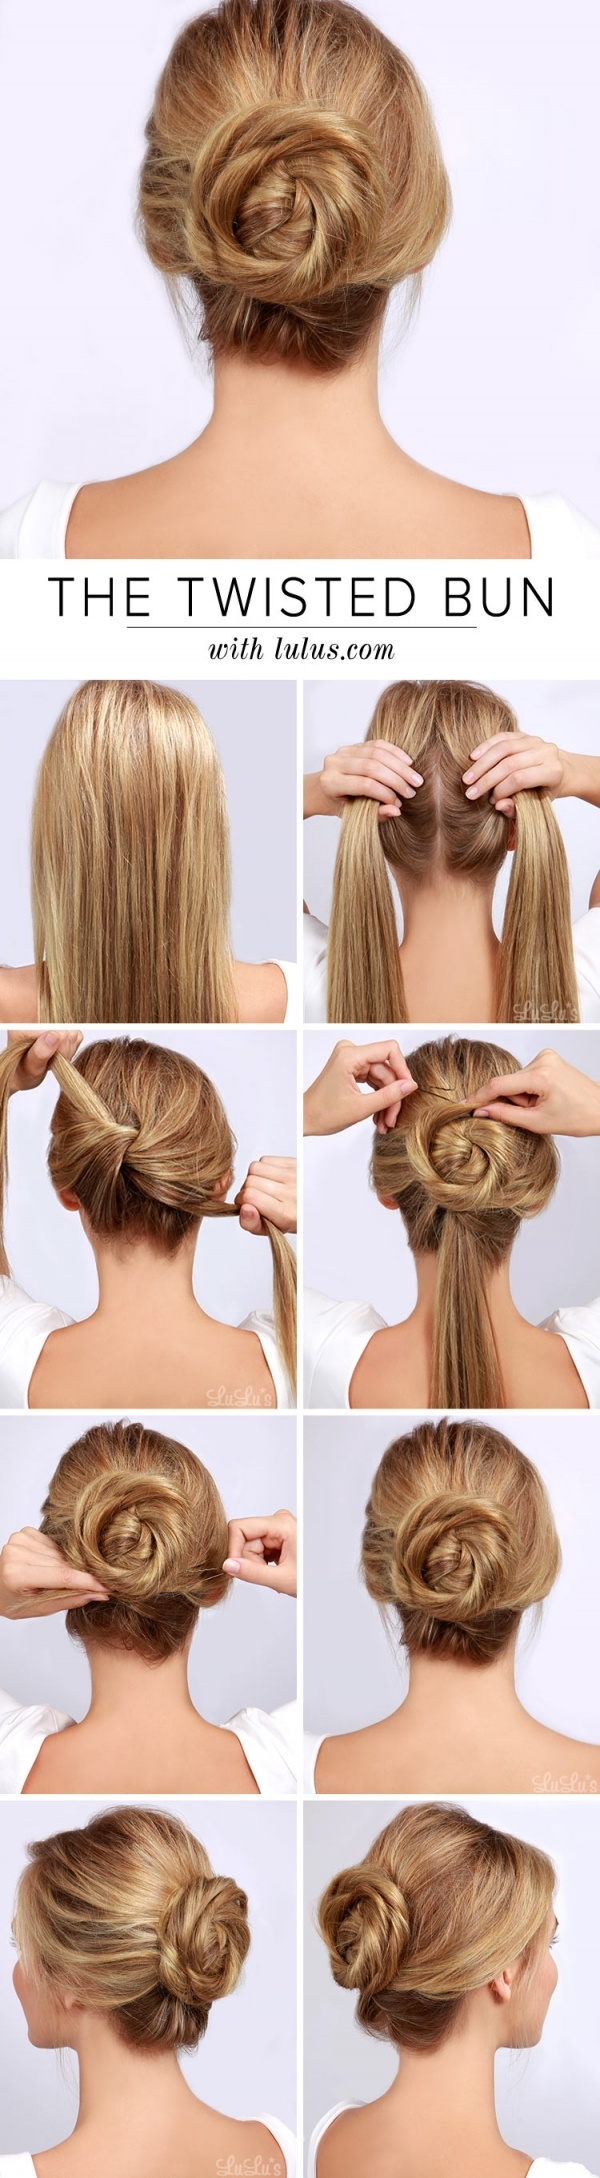 Watch How to Make a Chic Chignon in 6 Easy Steps video